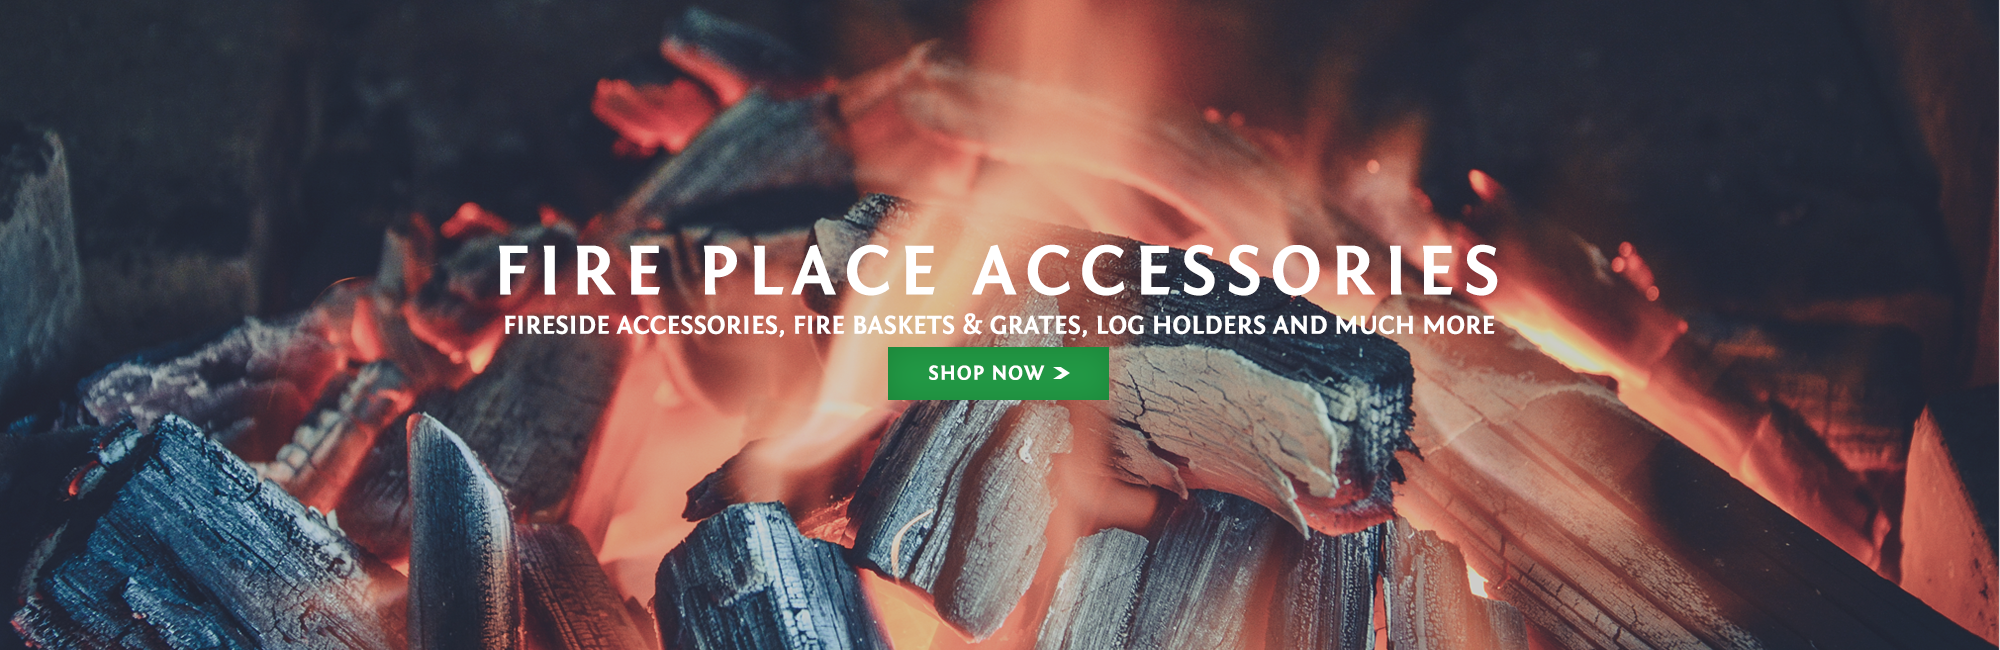 Fire Place Accessories. Fireside, log holders, fire baskets and more.